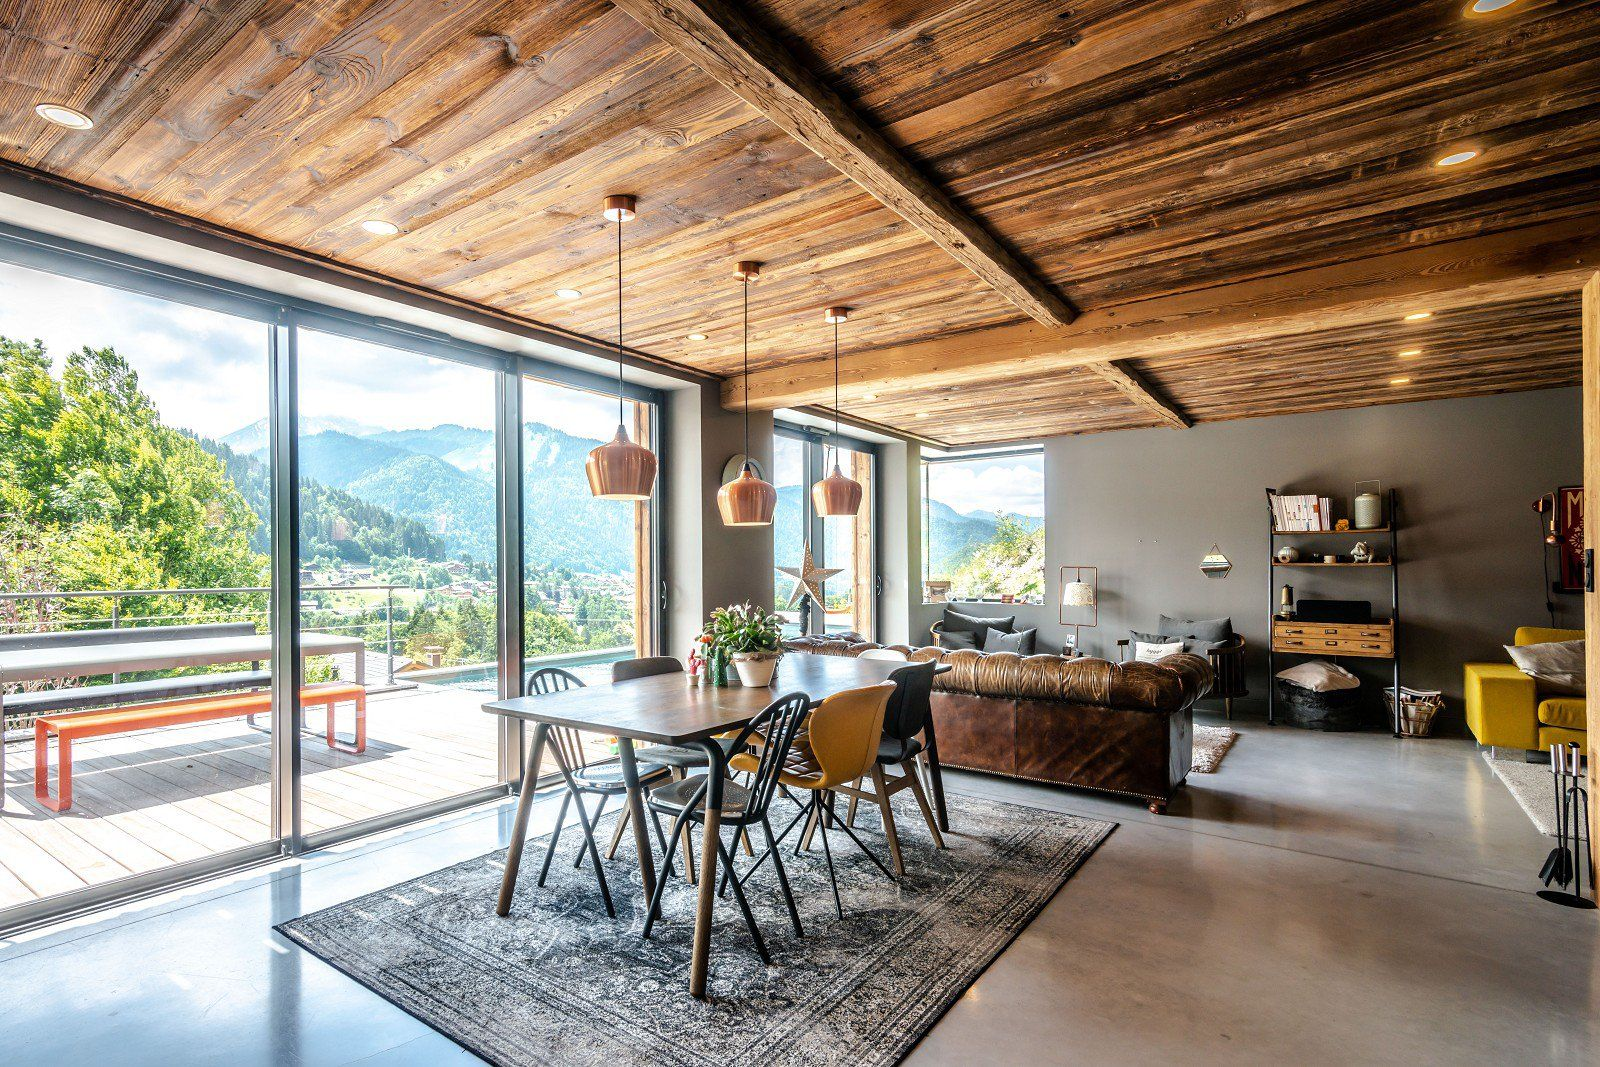 Morzine - Montriond - Chalet of 230 sq. m with swimming pool - 5 bedrooms